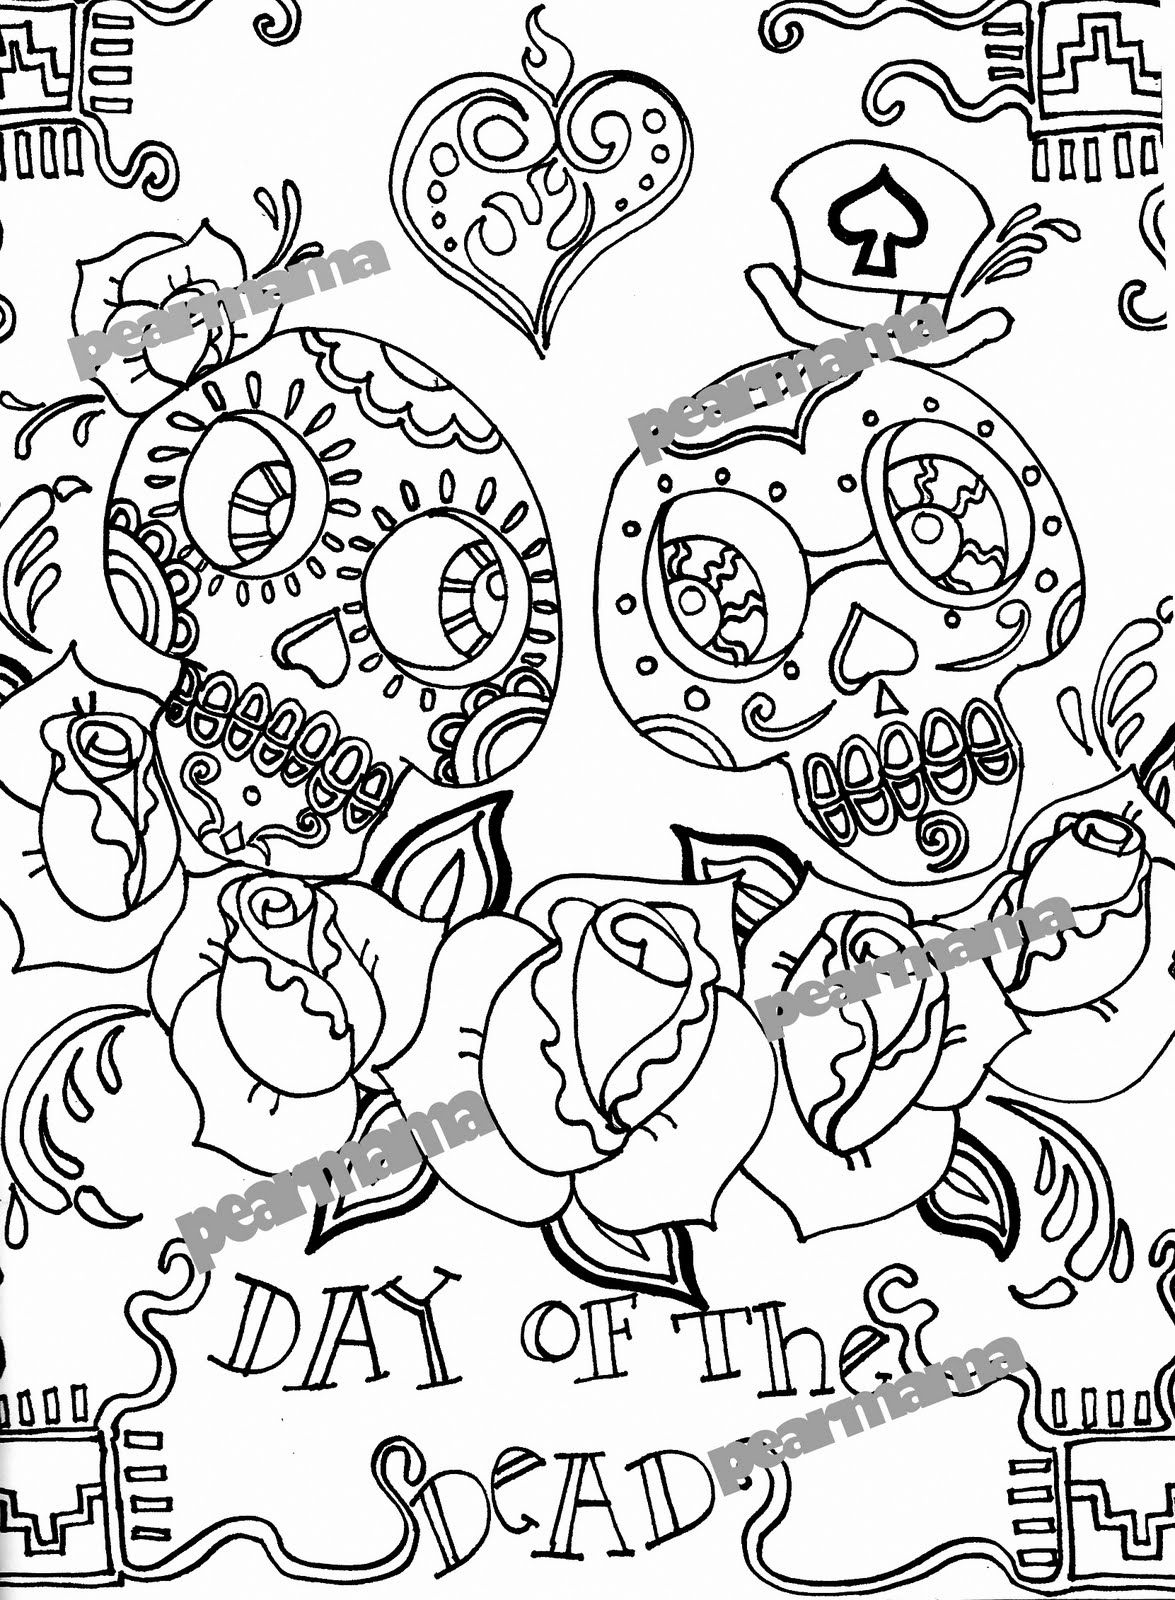 coloring printable day of the dead day of the dead printable coloring pages coloring pages coloring printable day the dead of